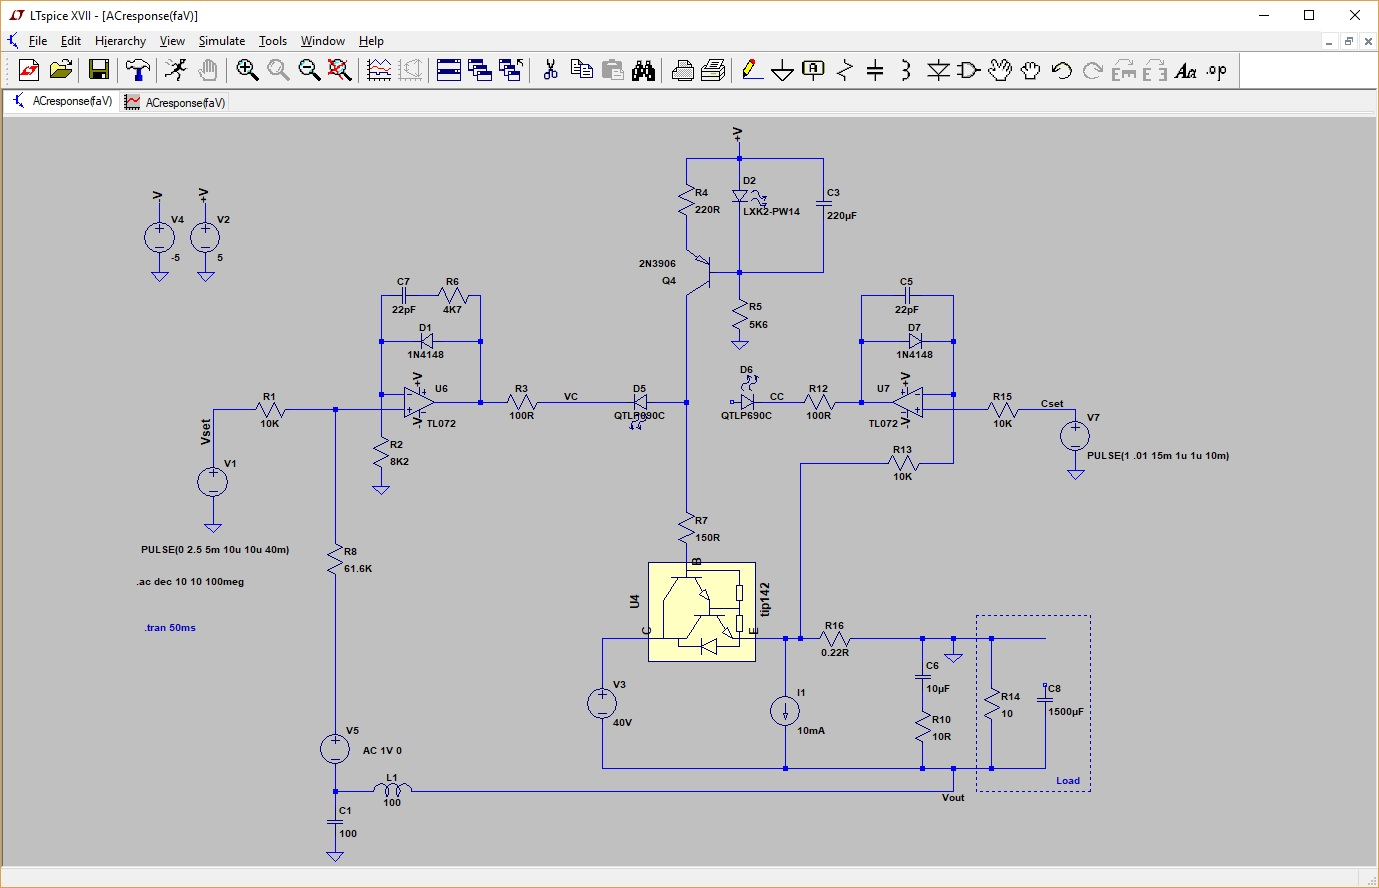 Pauls Diy Electronics Blog My New Power Supply Design Project Part 2 Testingelectroniccomponents 2methodsfortestingmosfetshtml I Also Use This For The Step Response Measurements So Some Artifacts Are Already In Schematic Wont Go Into Many Details Because May Mislead You